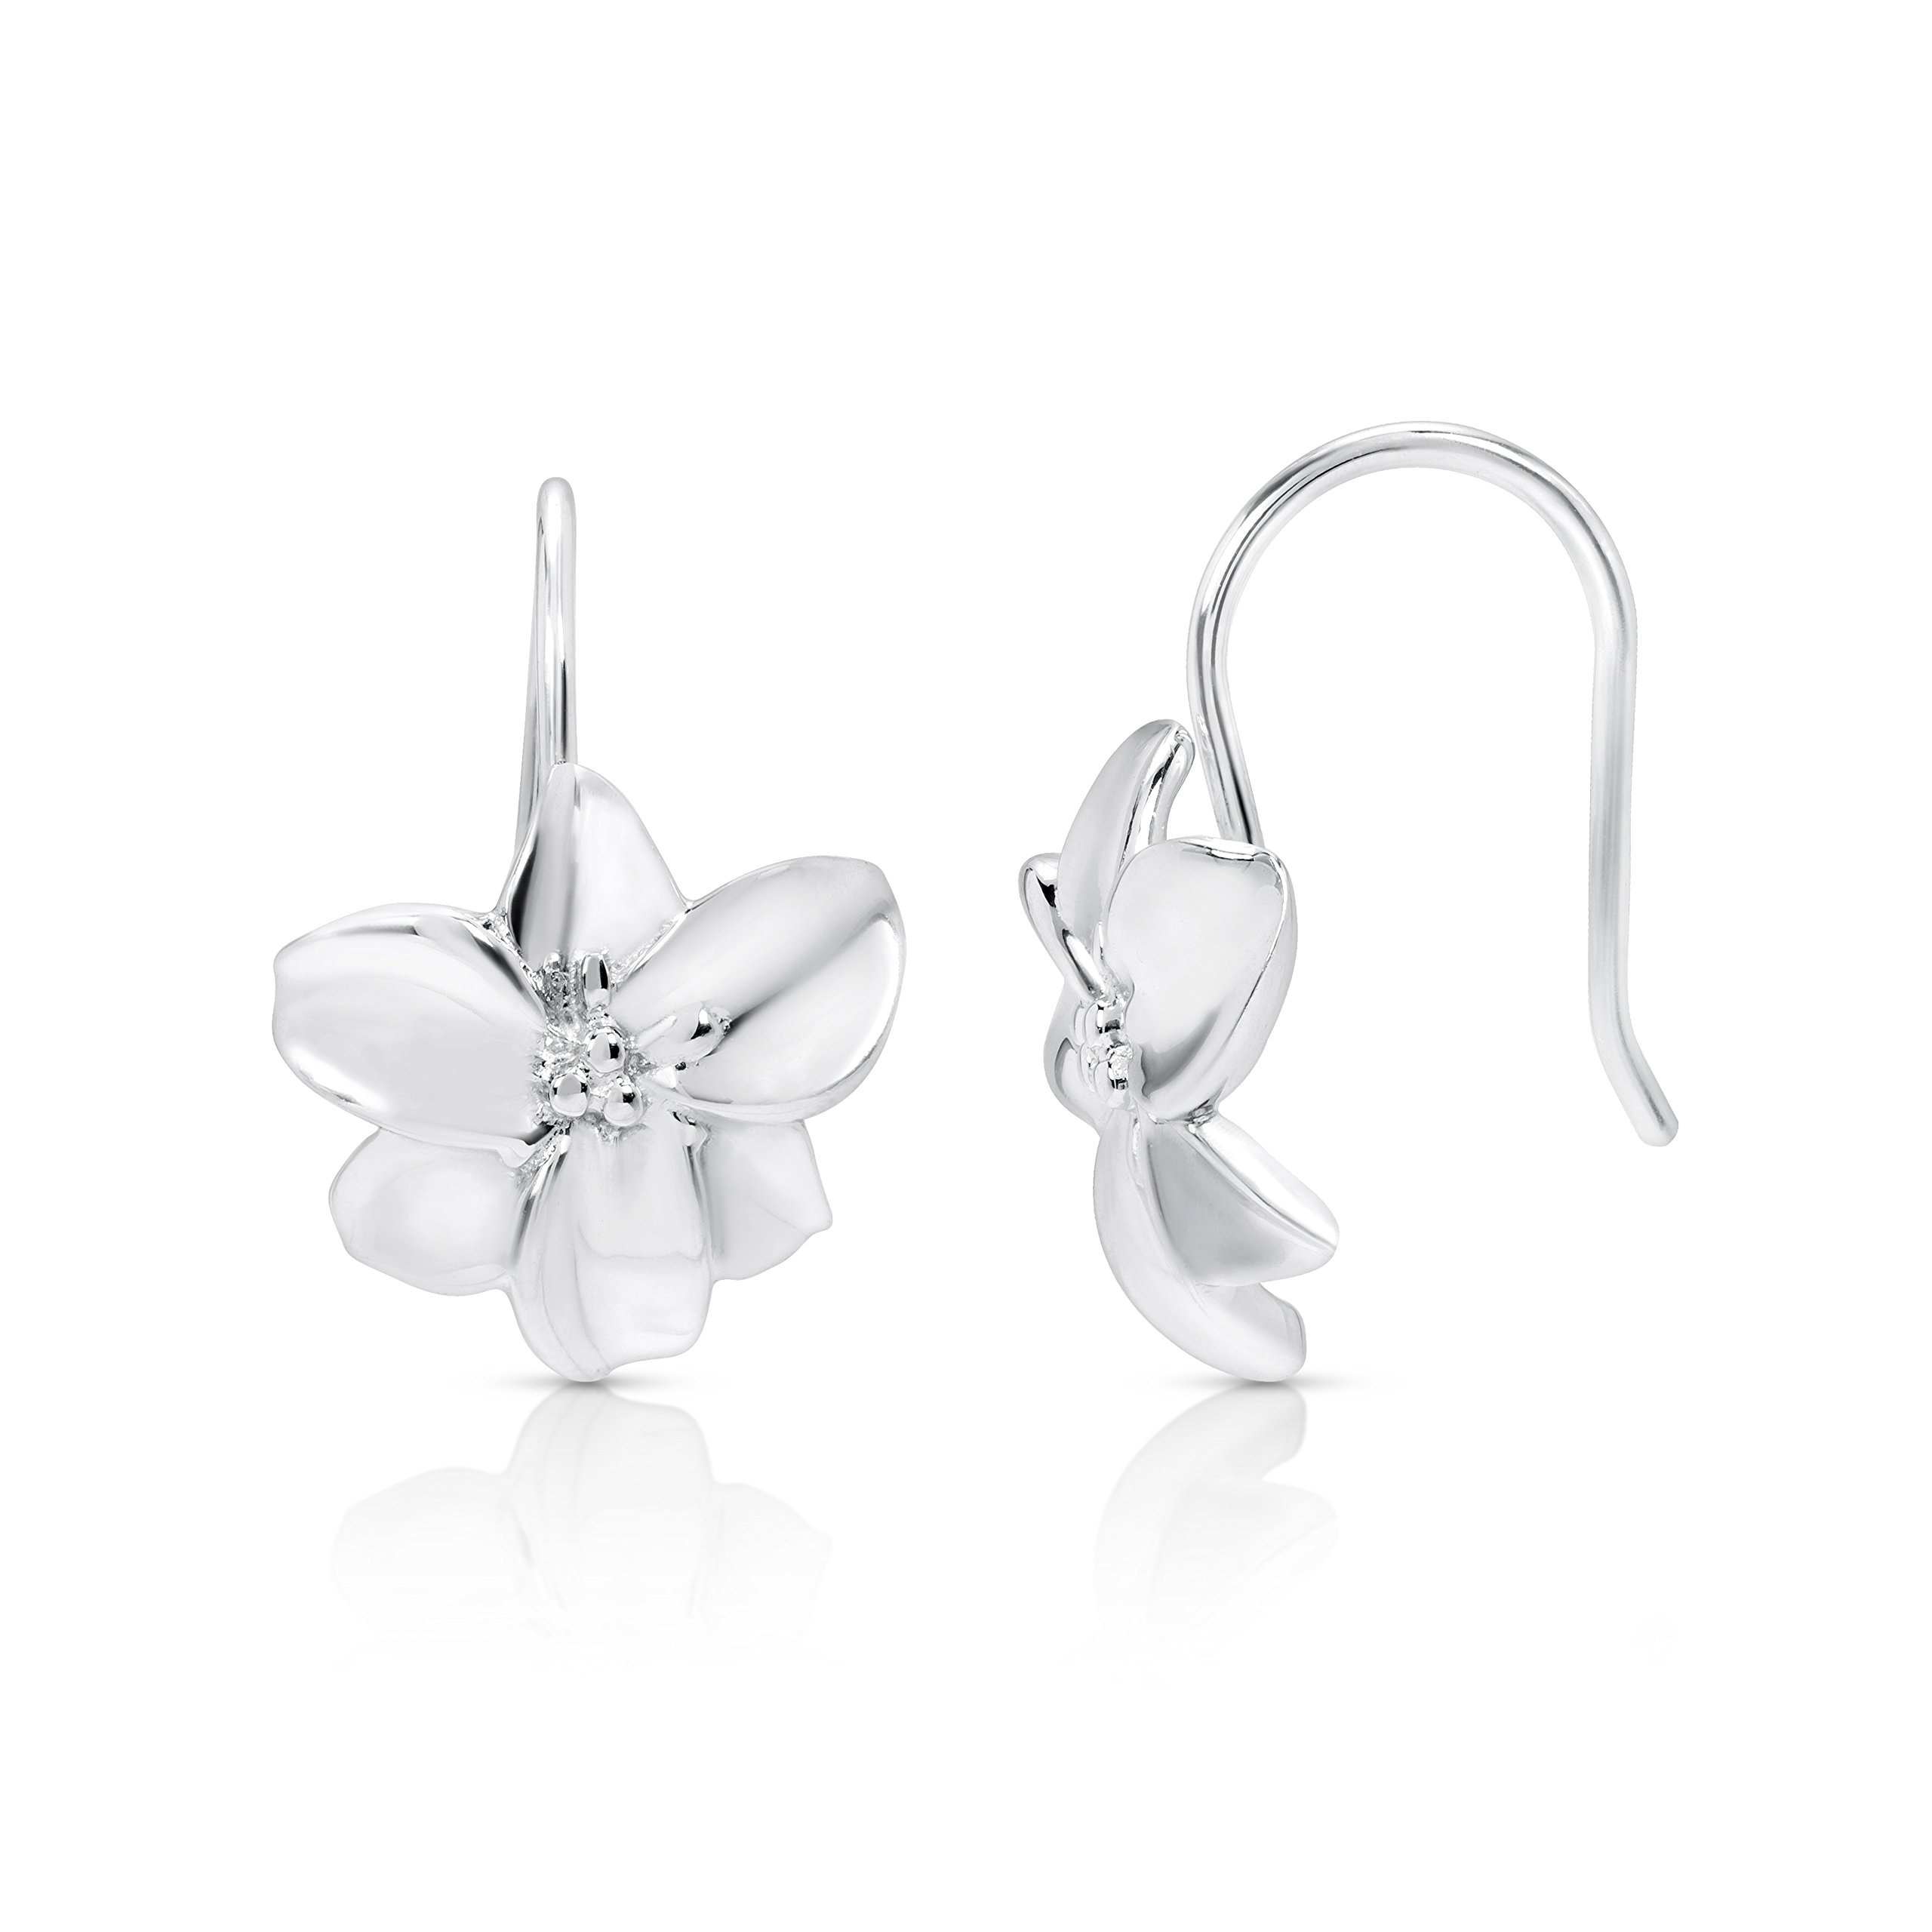 Sparkling Silver Lily Flower Earrings Never Rust 925 Sterling Silver Natural and Hypoallergenic Hooks For Women and Girls with Free Breathtaking Gift Box for Special Moments of Love By BLING BIJOUX